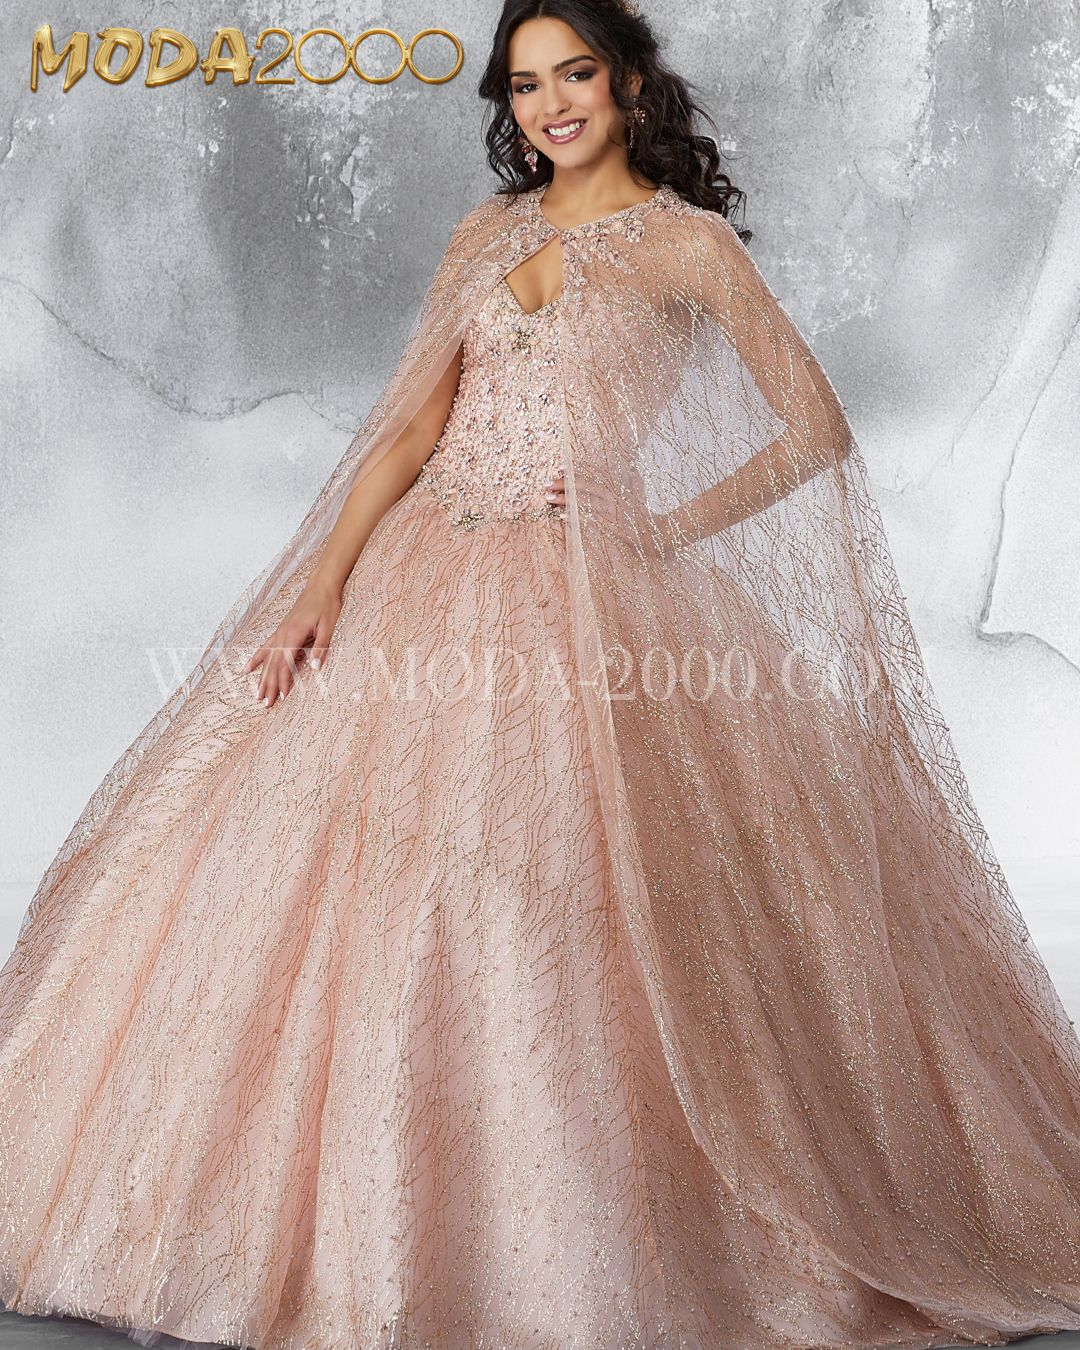 Princess Vibes rose gold Quinceañera dress / Sweet 16. Rose